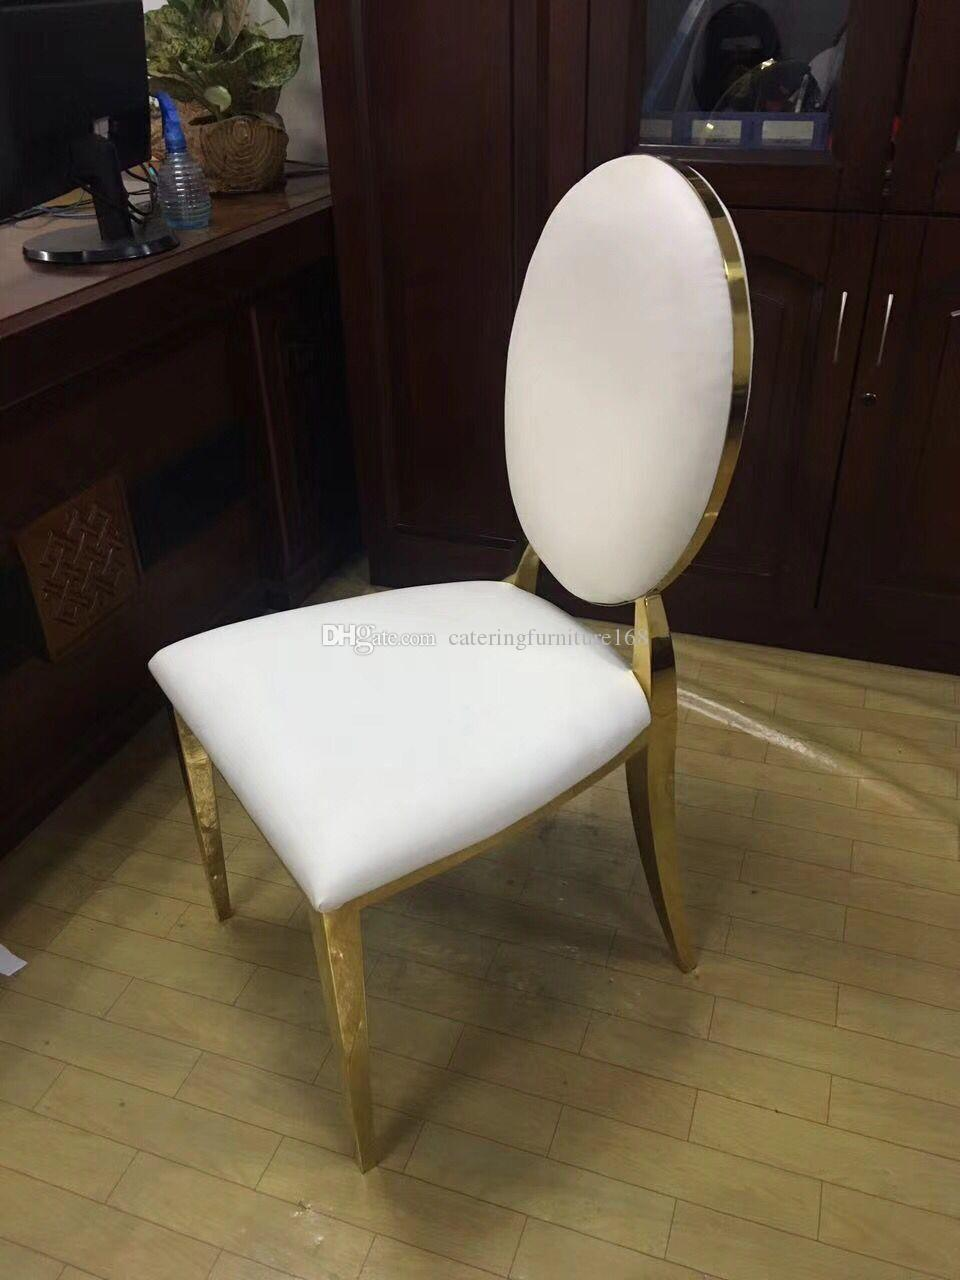 2019 Gold Silver Stackable Stacking Banquet Wedding Stainless Steel Leather Round Back Dining Chair From Cateringfurniture168 38 2 Dhgate Com